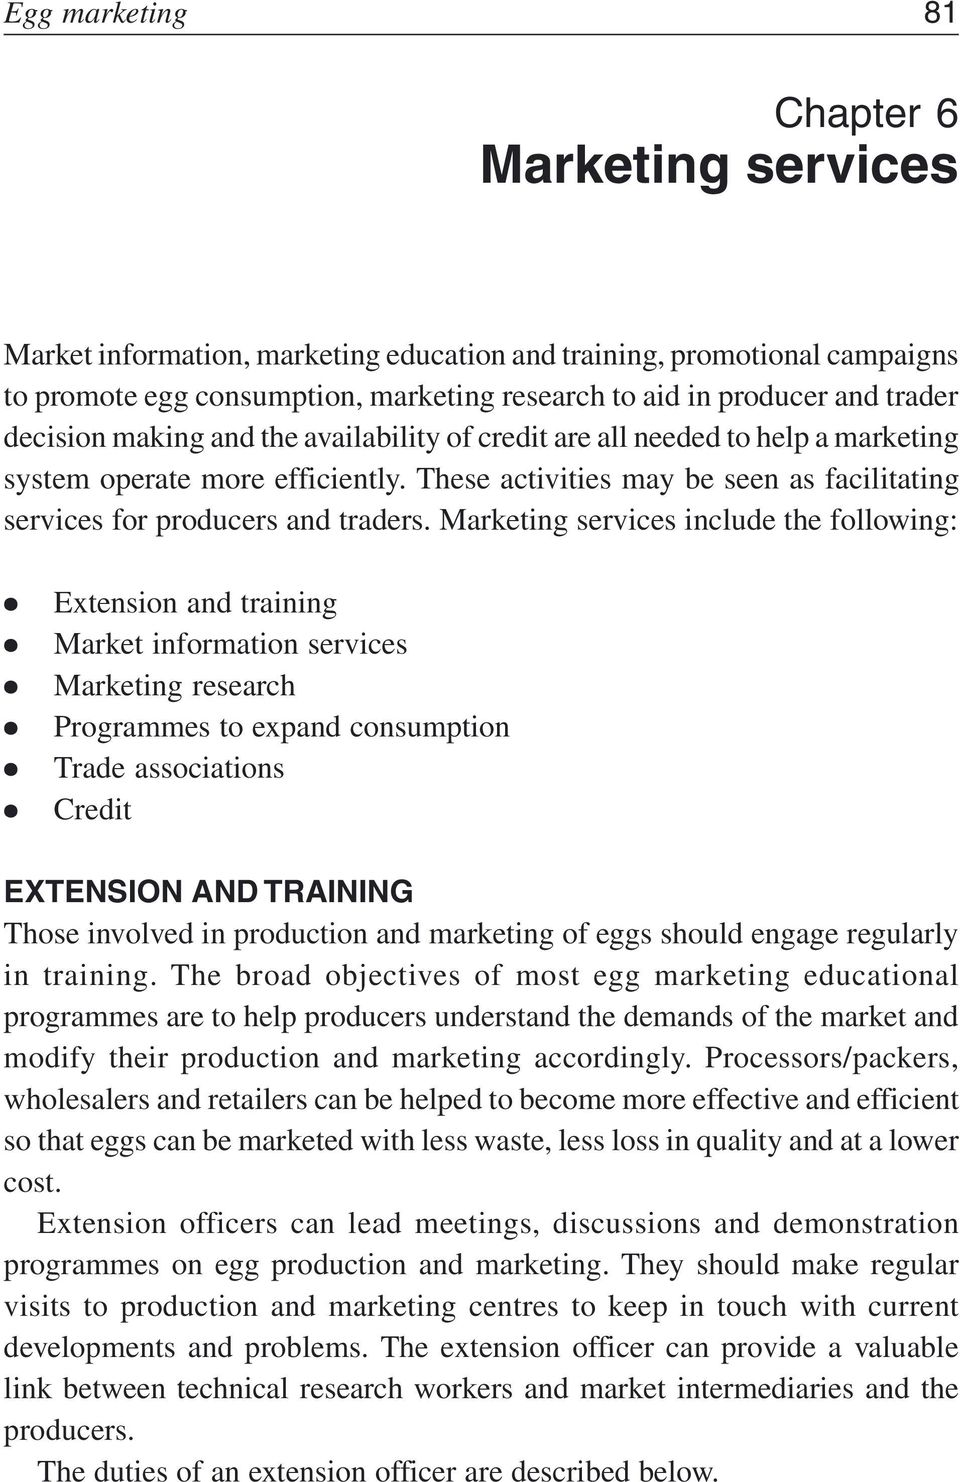 Marketing services include the following: Extension and training Market information services Marketing research Programmes to expand consumption Trade associations Credit EXTENSION AND TRAINING Those